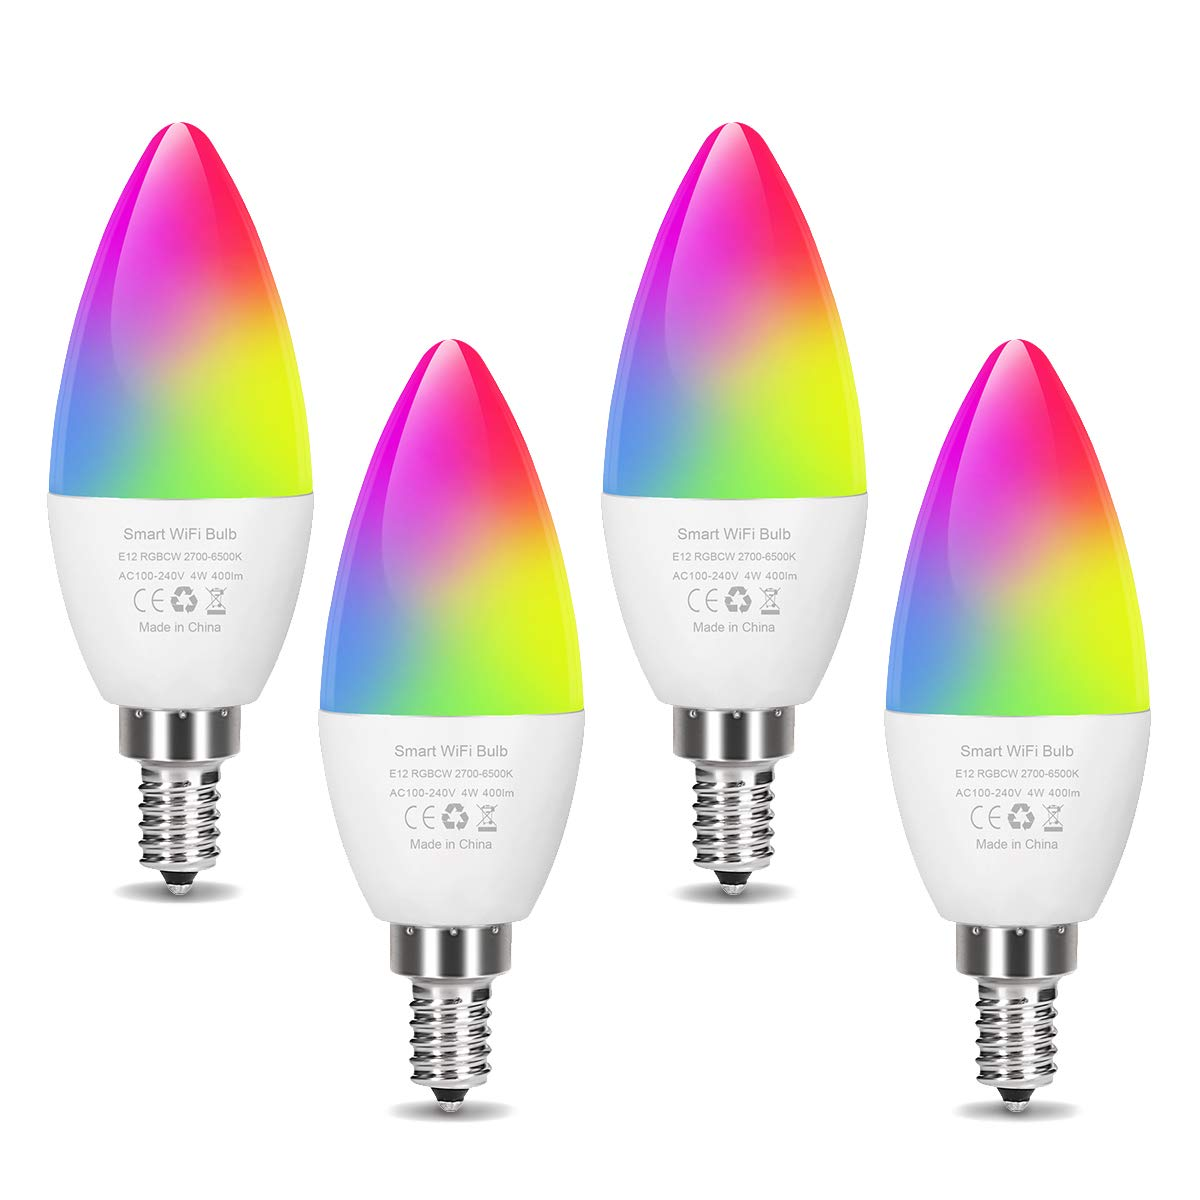 Smart LED Light Bulb E12 Candelabra Bulb WiFi Color Changing LED Bulbs, Dimmable Ceiling Fan Light 40W Equivalent, Smart Chandelier Lighting Work with Alexa Google Home for Home Room Decor (4 Pack)